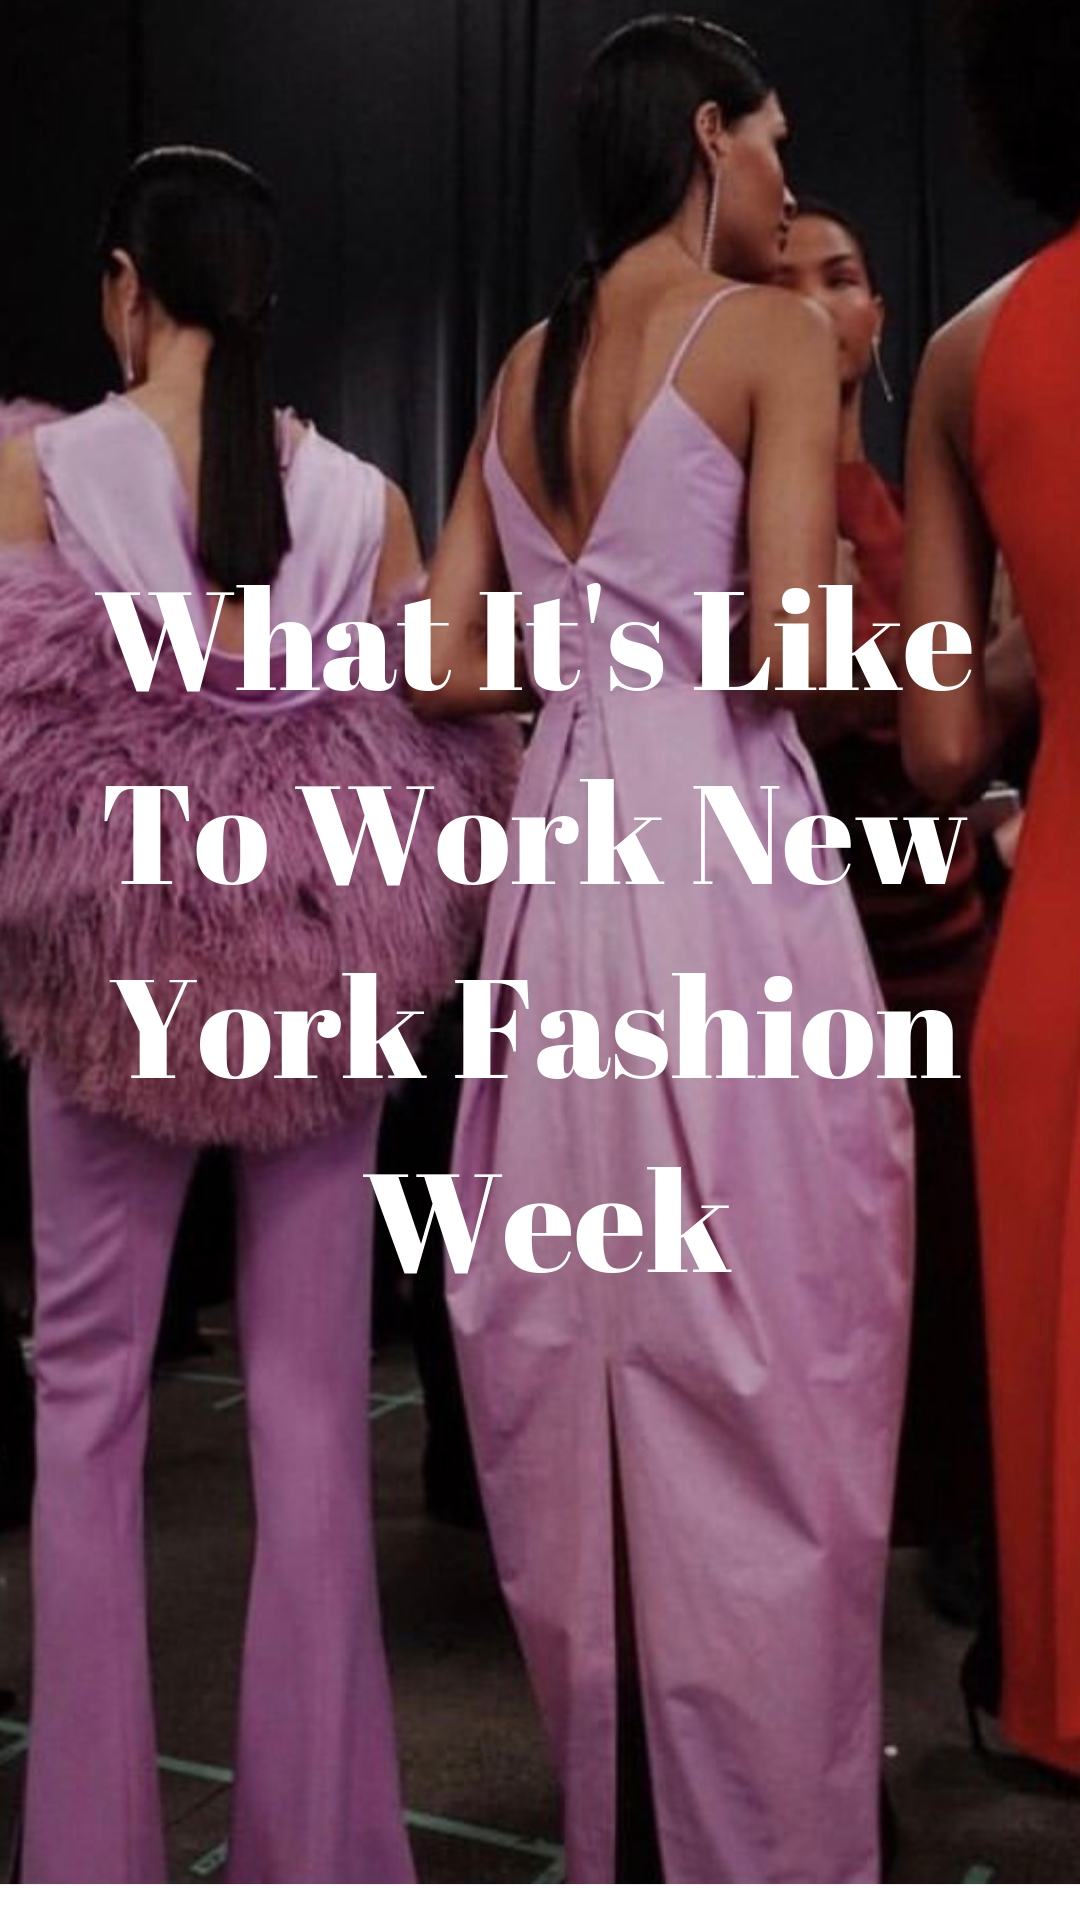 What its like to work New York Fashion Week, NYFW